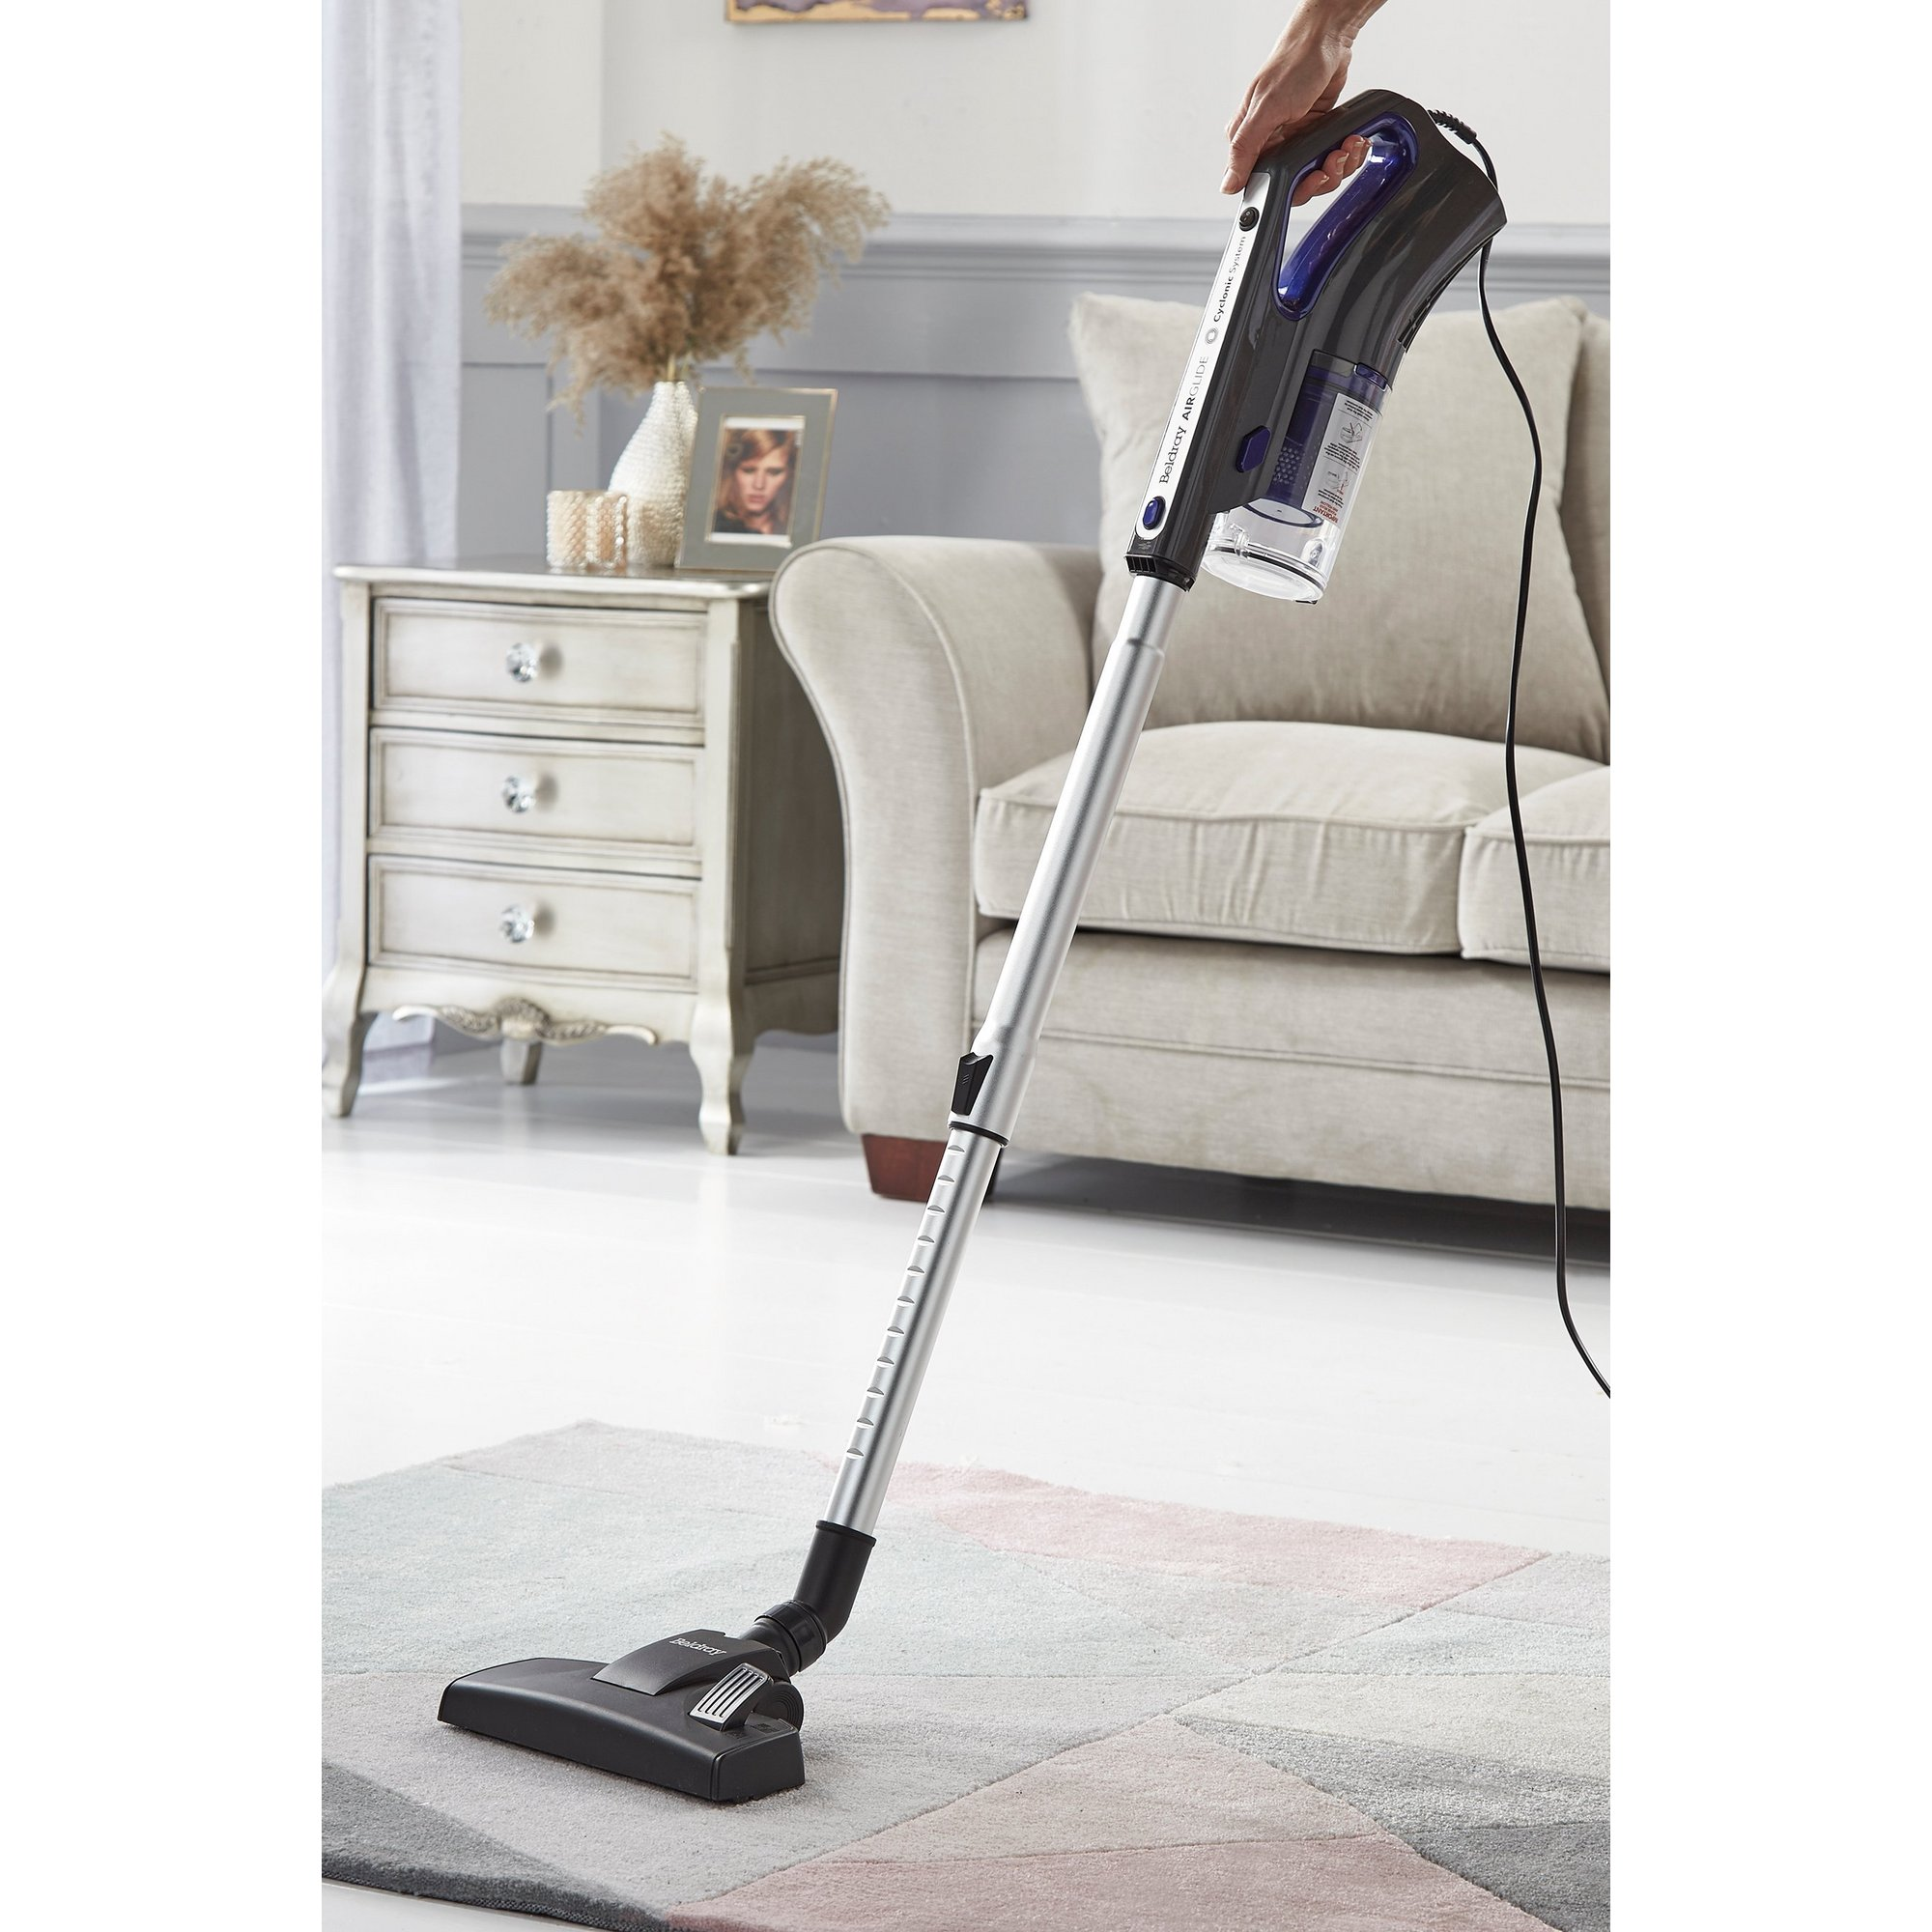 Image of Beldray Airglide 2-In-1 Corded Stick Vac